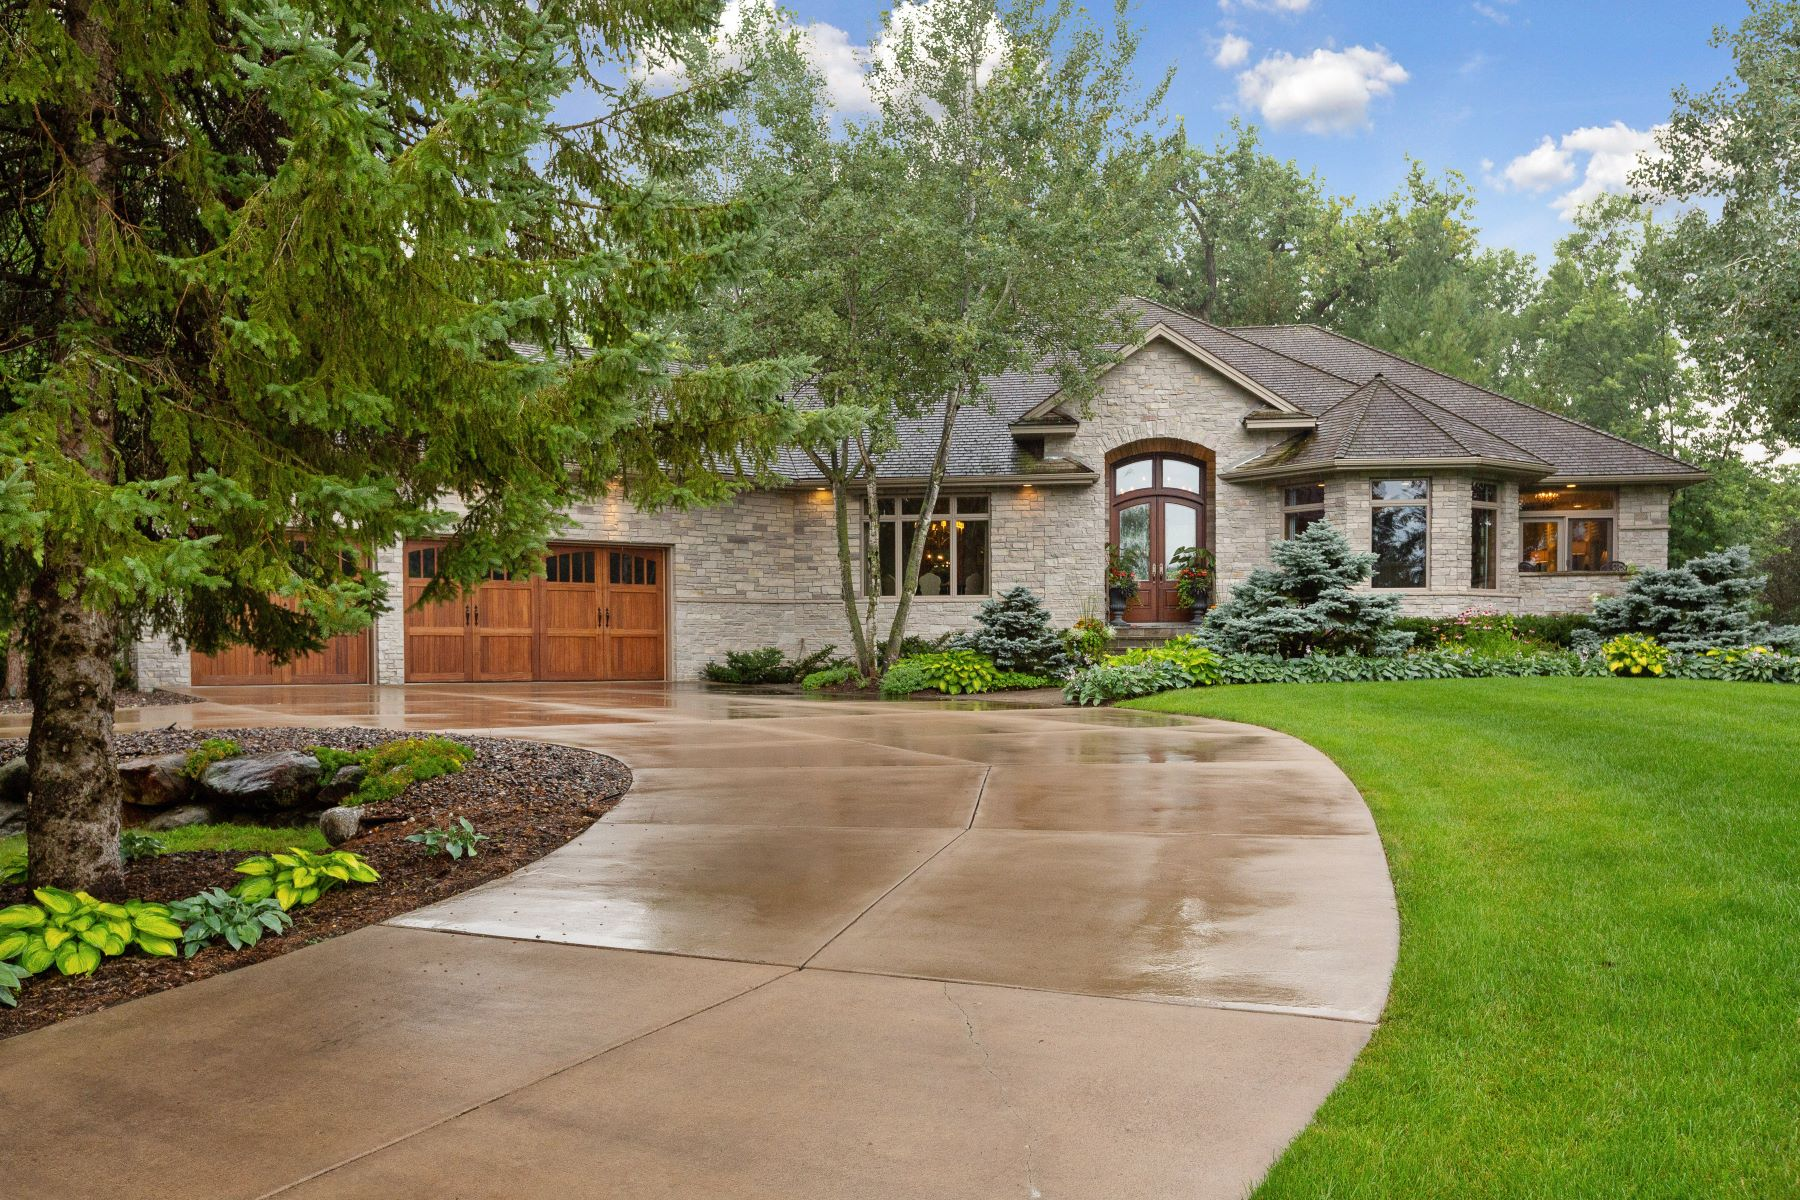 Single Family Homes للـ Sale في Luxury One-Level Living in Coveted Clay Cliffe near Lake Minnetonka 55 Clay Cliffe Dr, Tonka Bay, Minnesota 55331 United States